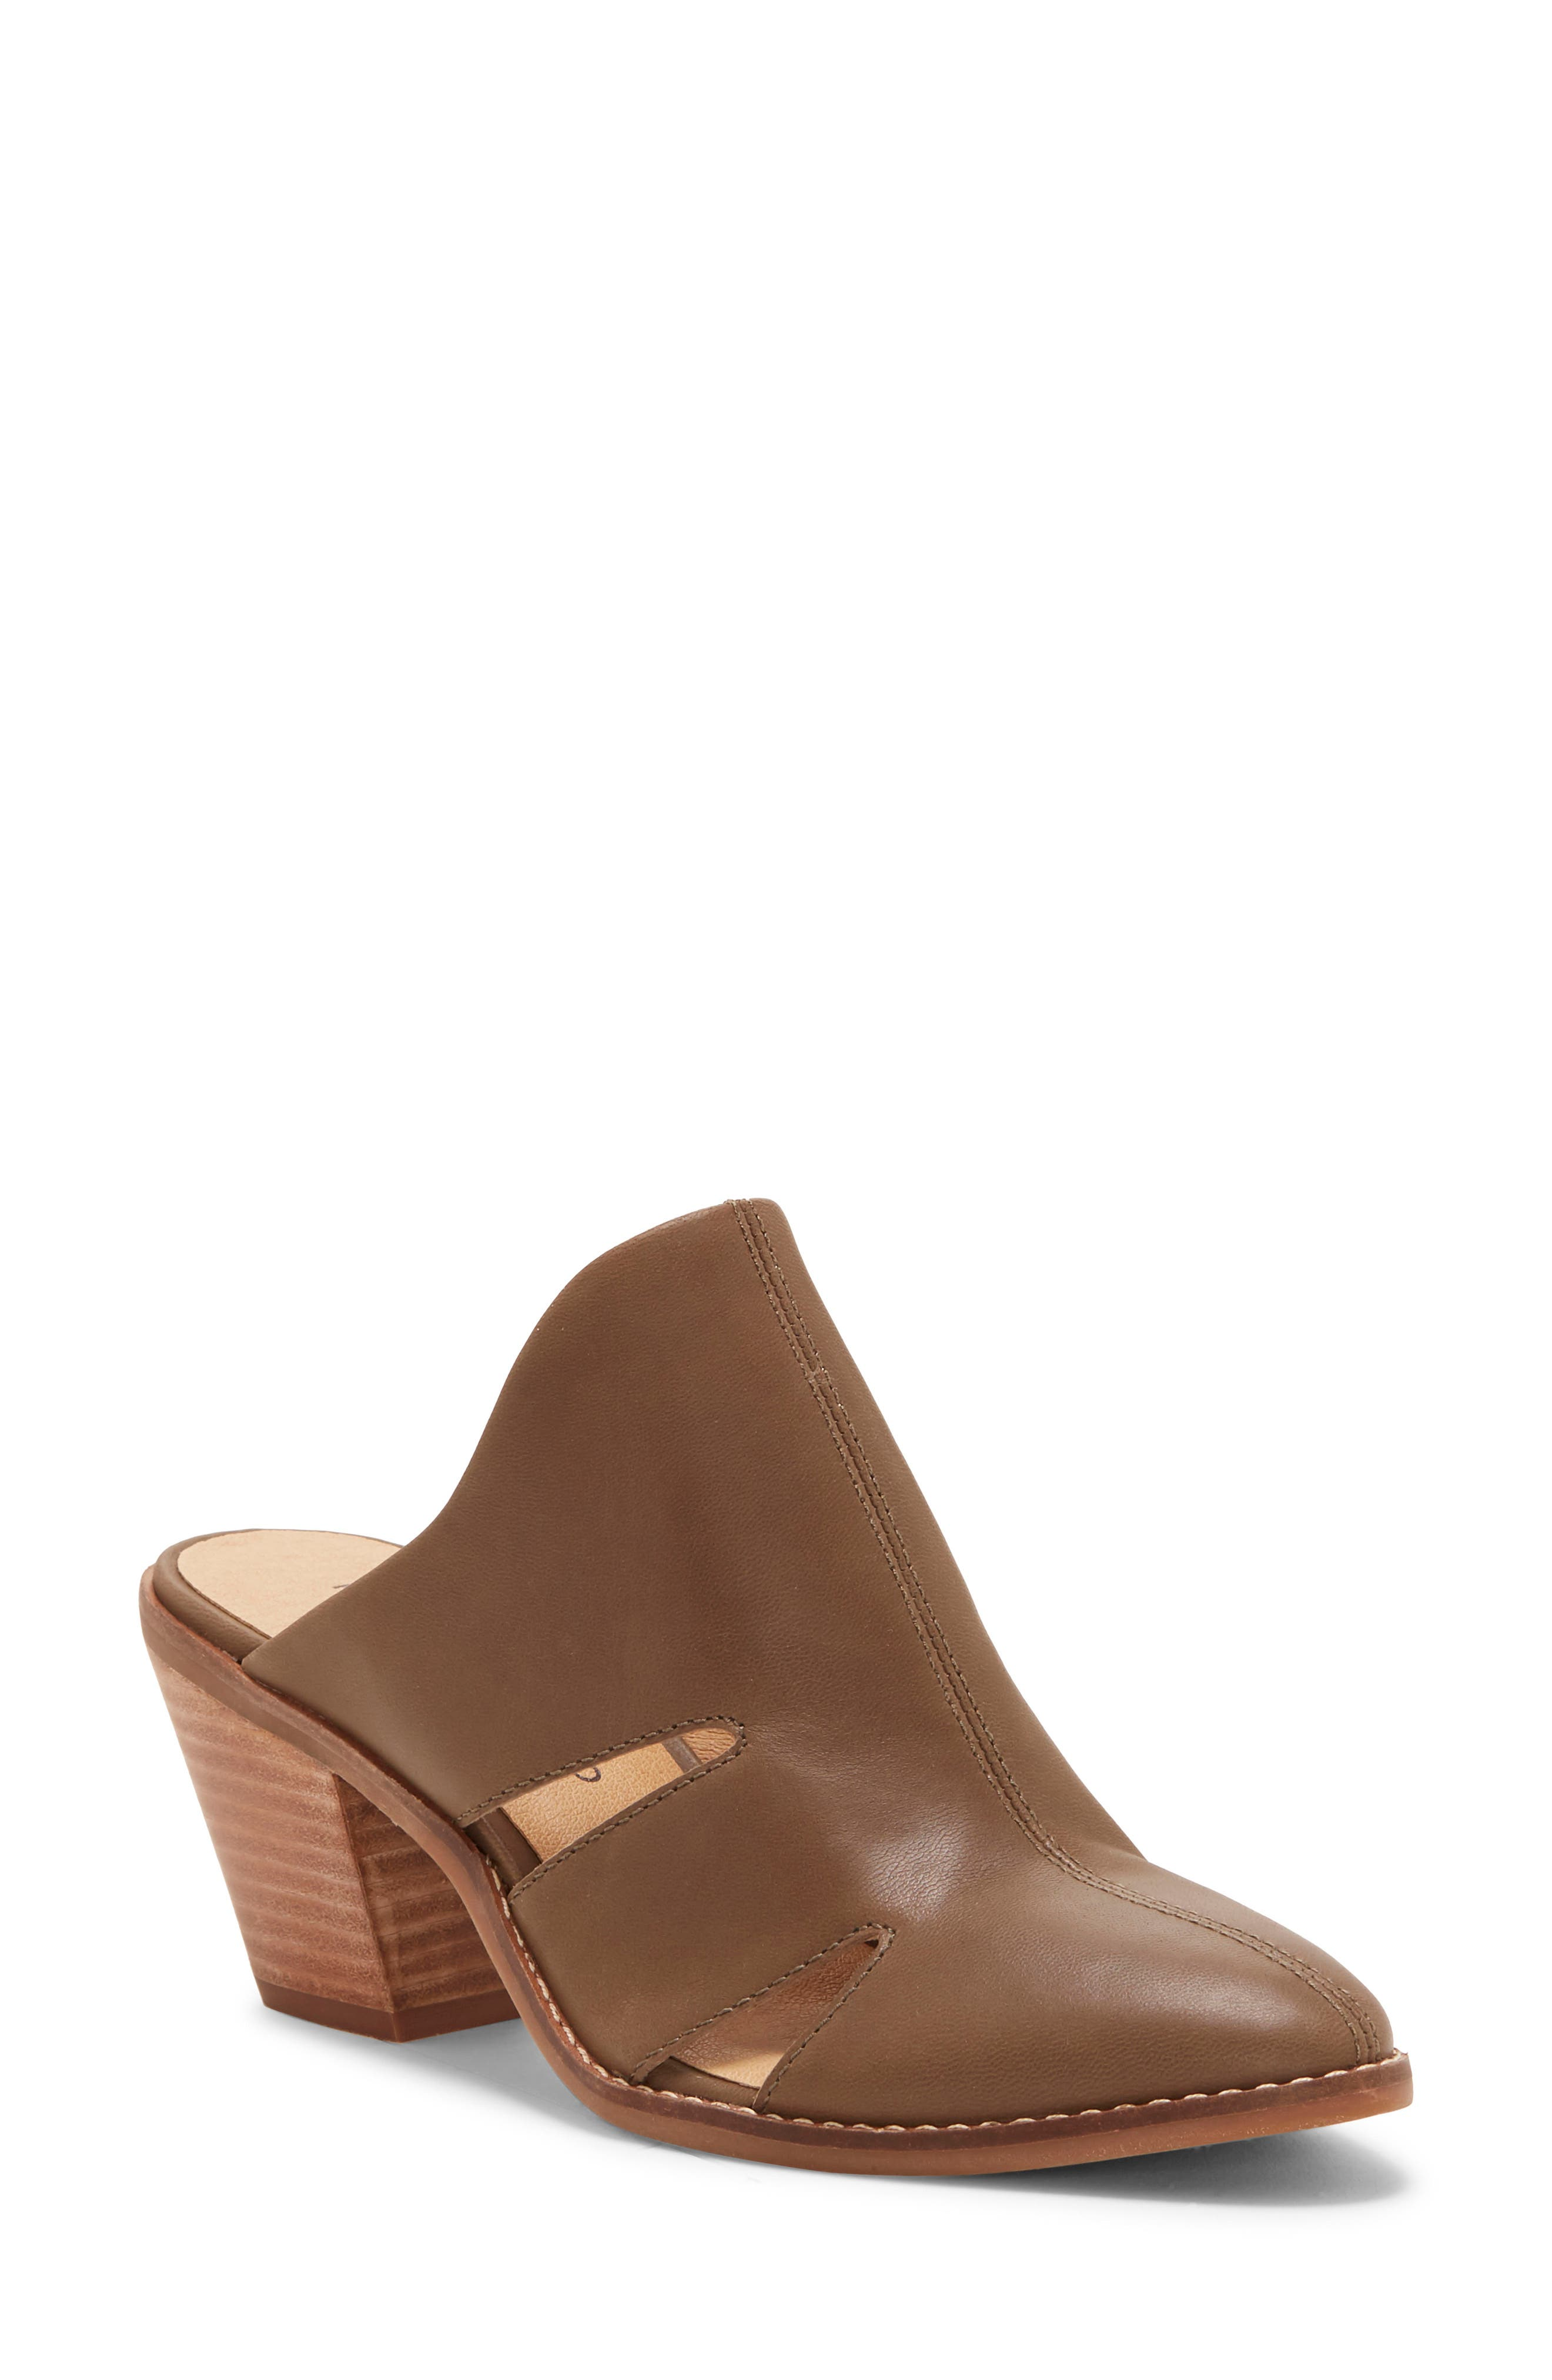 Slim cutouts keep feet breezy in a statement-making mule set on a cone-shaped stacked heel. Style Name: Lucky Brand Orinthia Mule (Women). Style Number: 5958723. Available in stores.